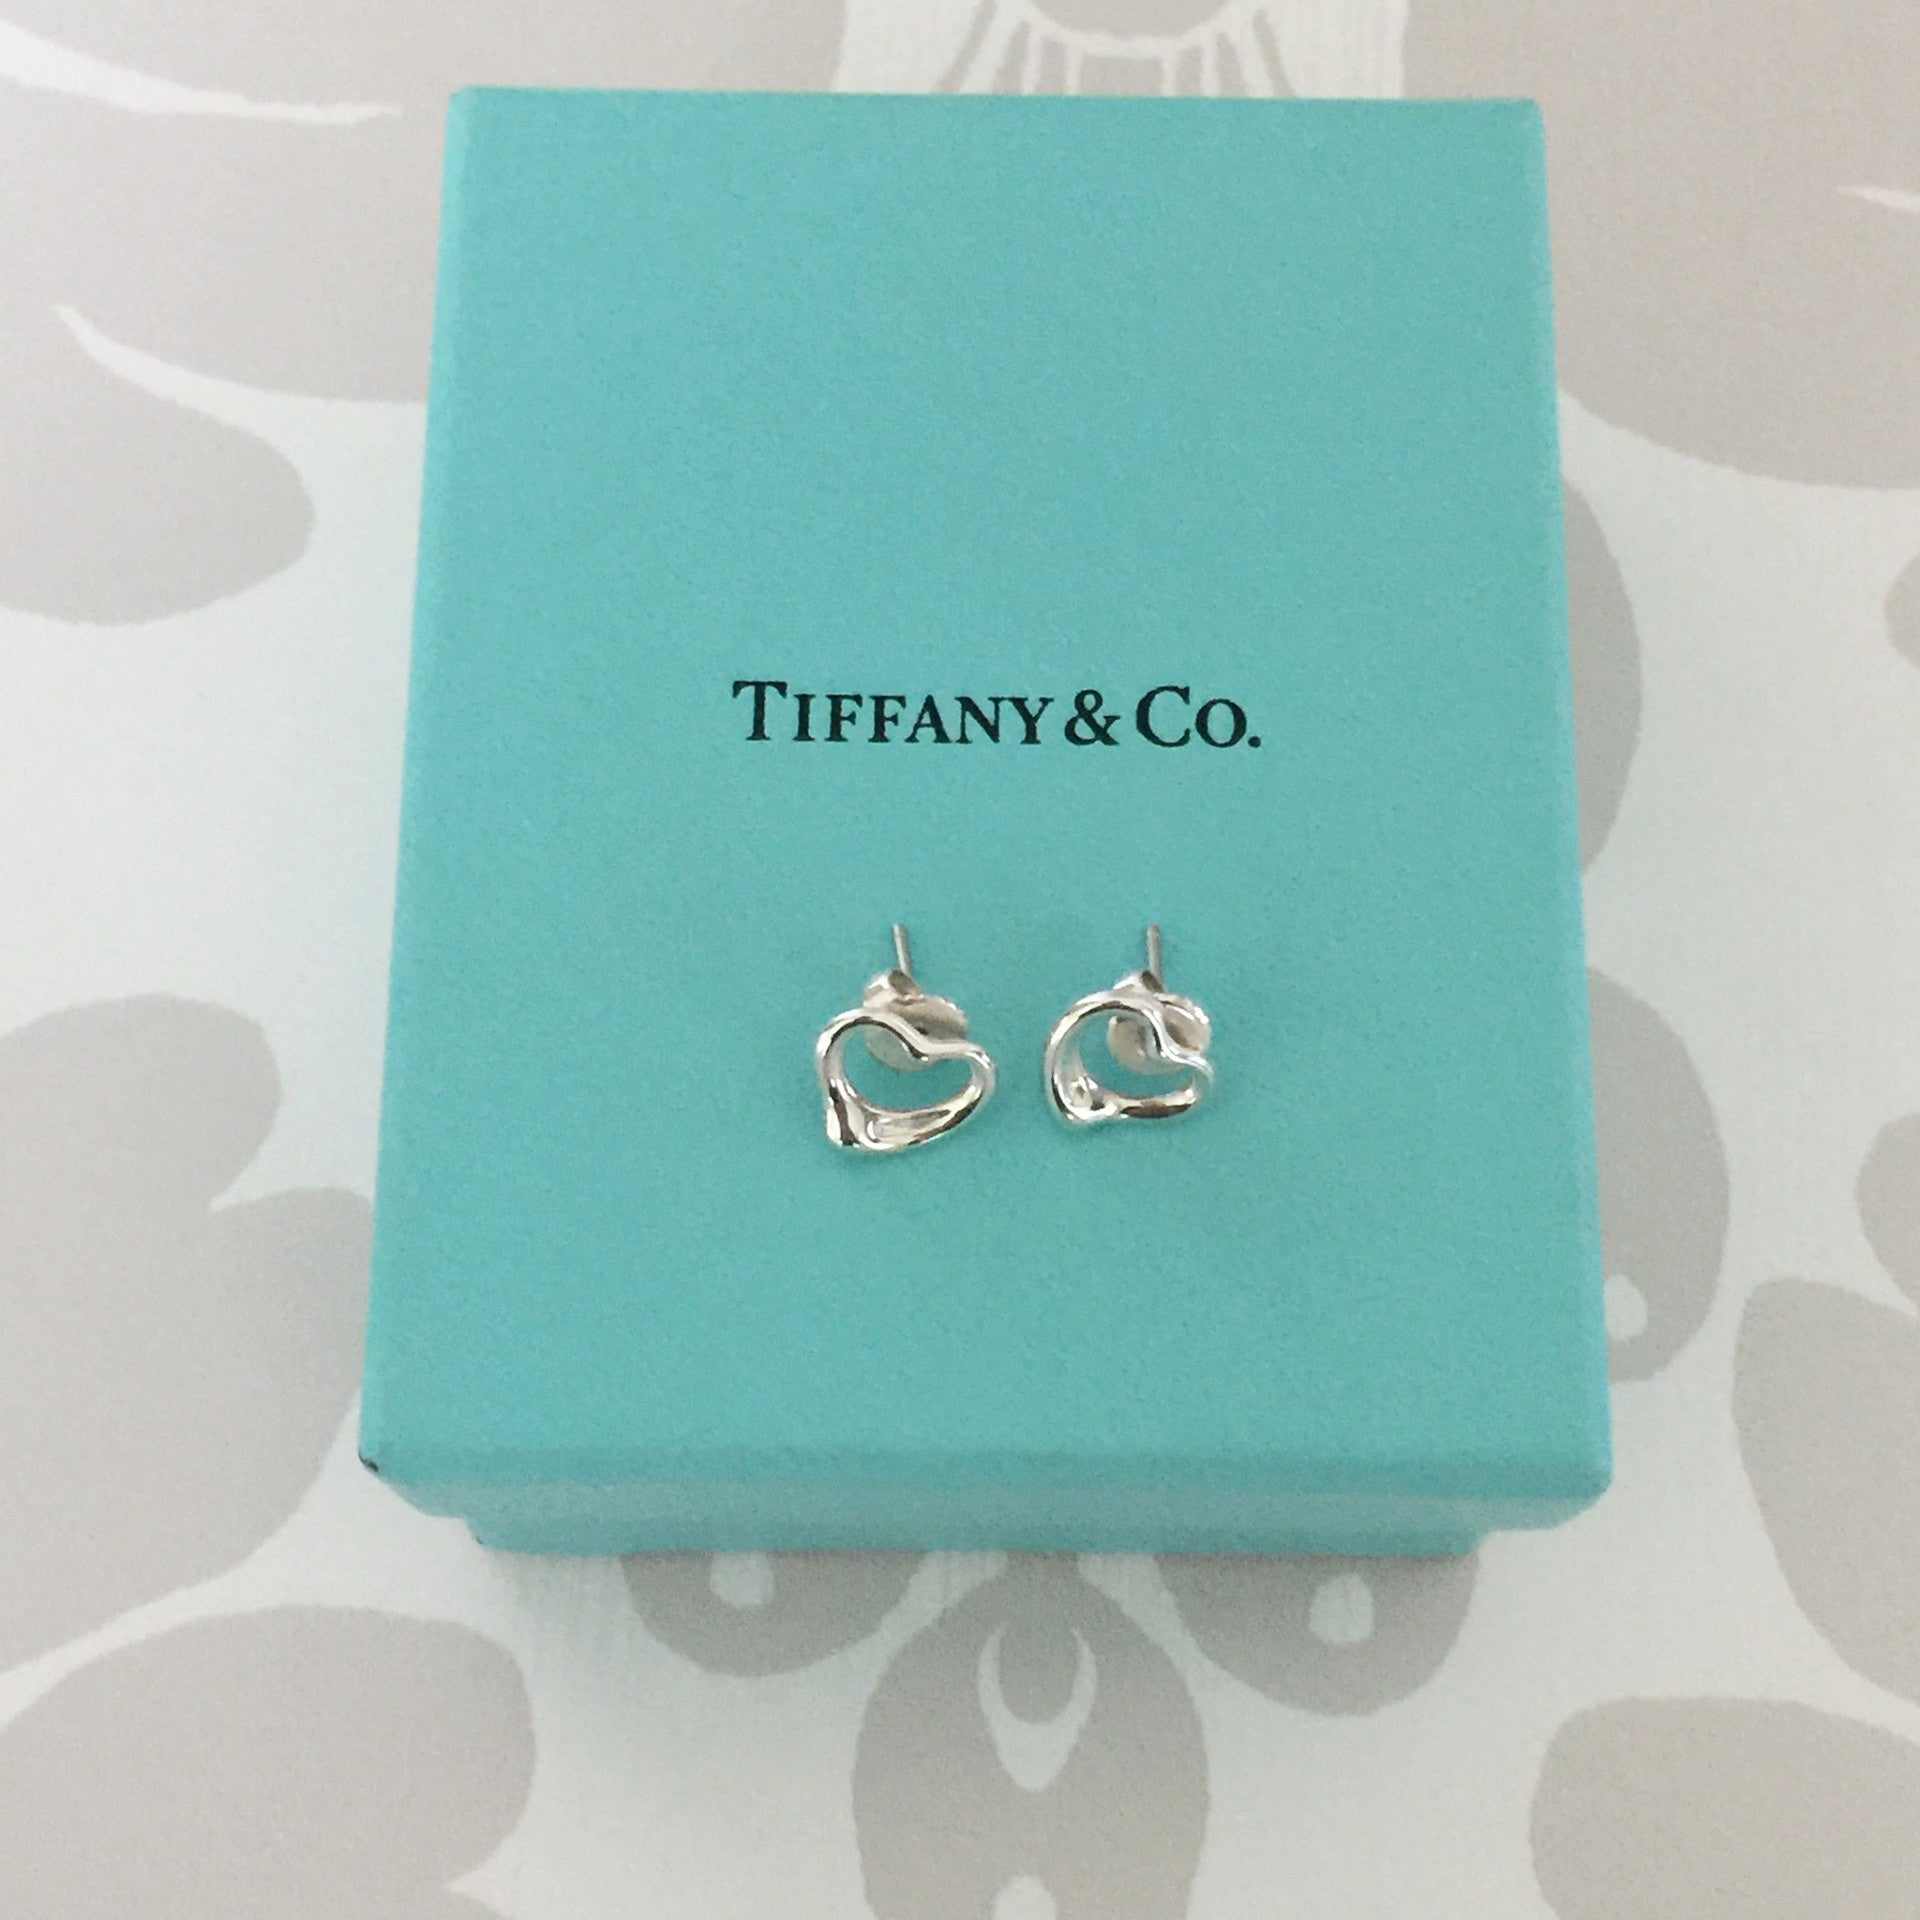 Authentic TIFFANY & CO Open Heart Earrings